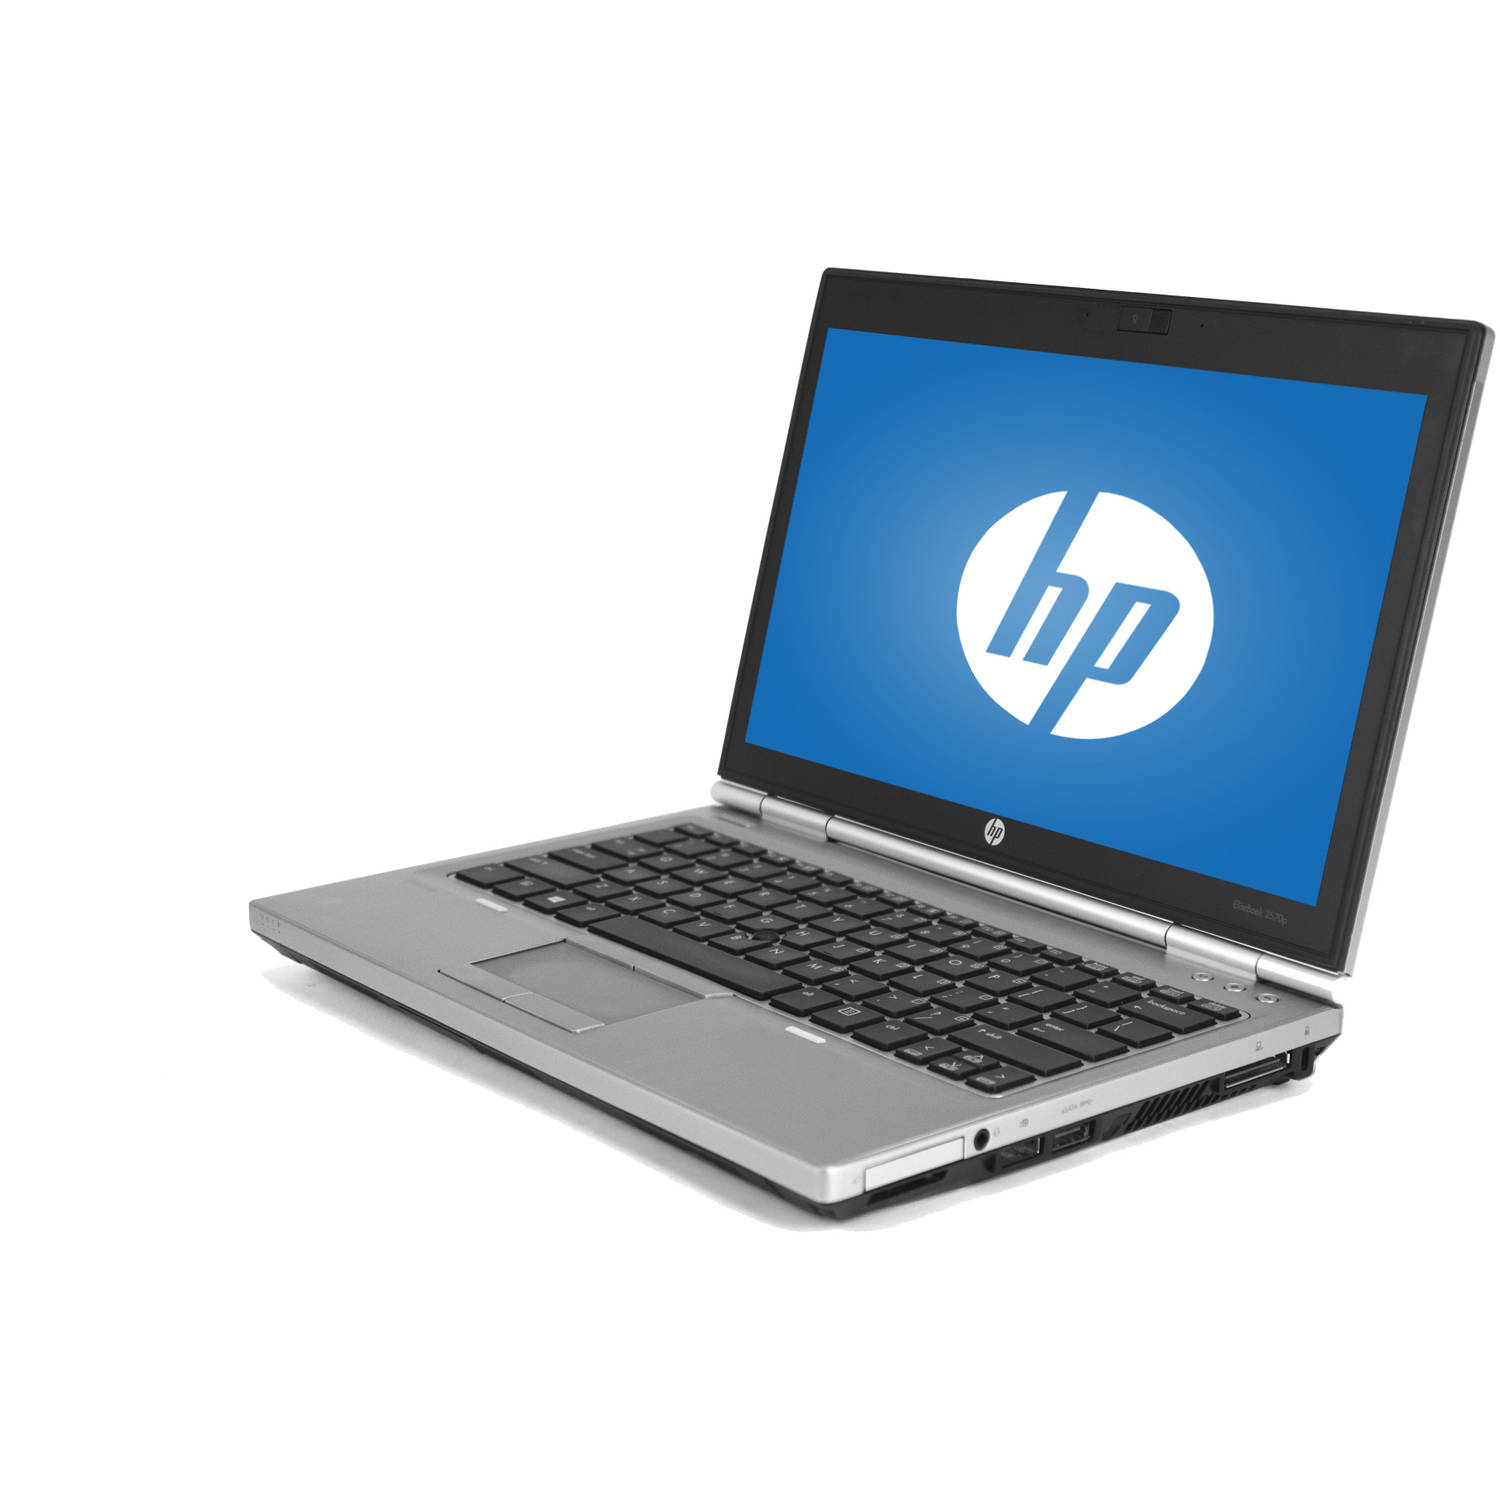 Refurbished HP Silver 12.5 EliteBook 2570P WA5 - 1123 Laptop PC with Intel Core i5 - 3320M Processor, 4GB Memory, 128GB Solid State Drive and Windows 10 Pro